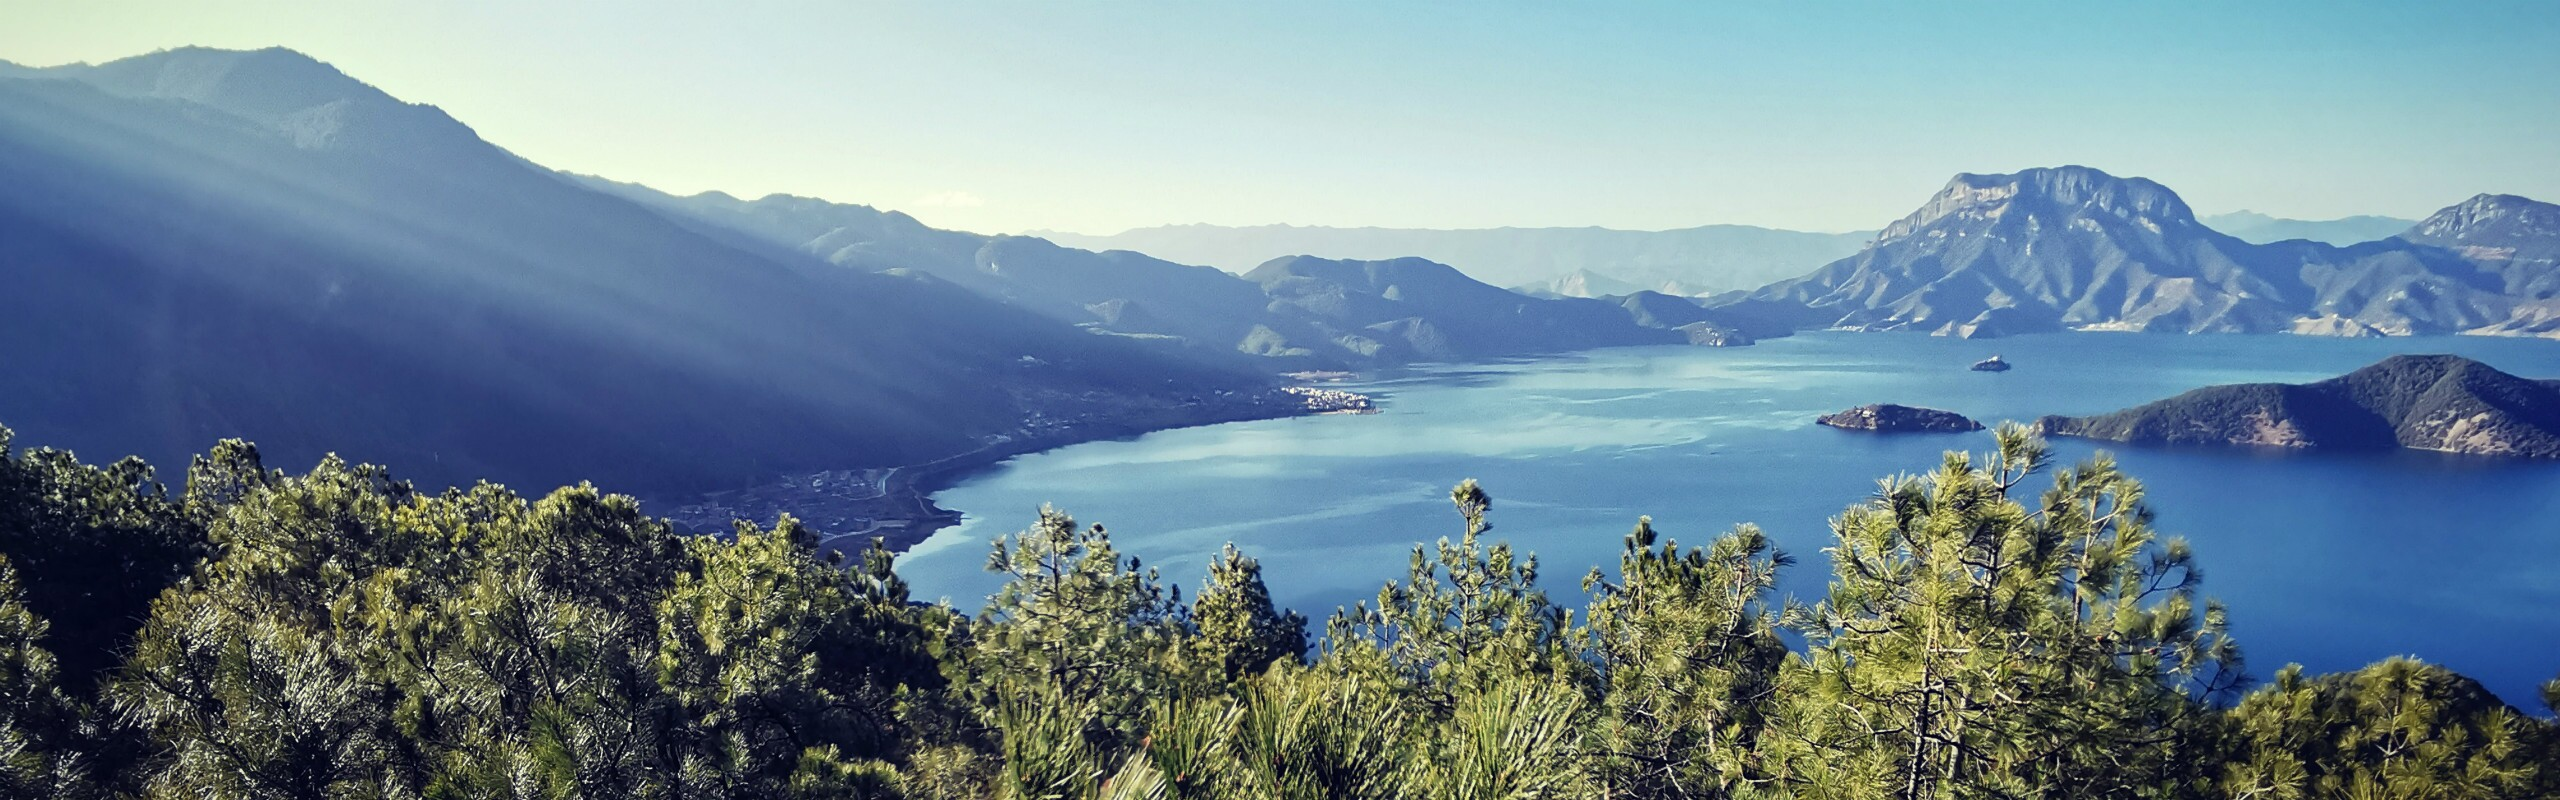 3-Day Lugu Lake Tour